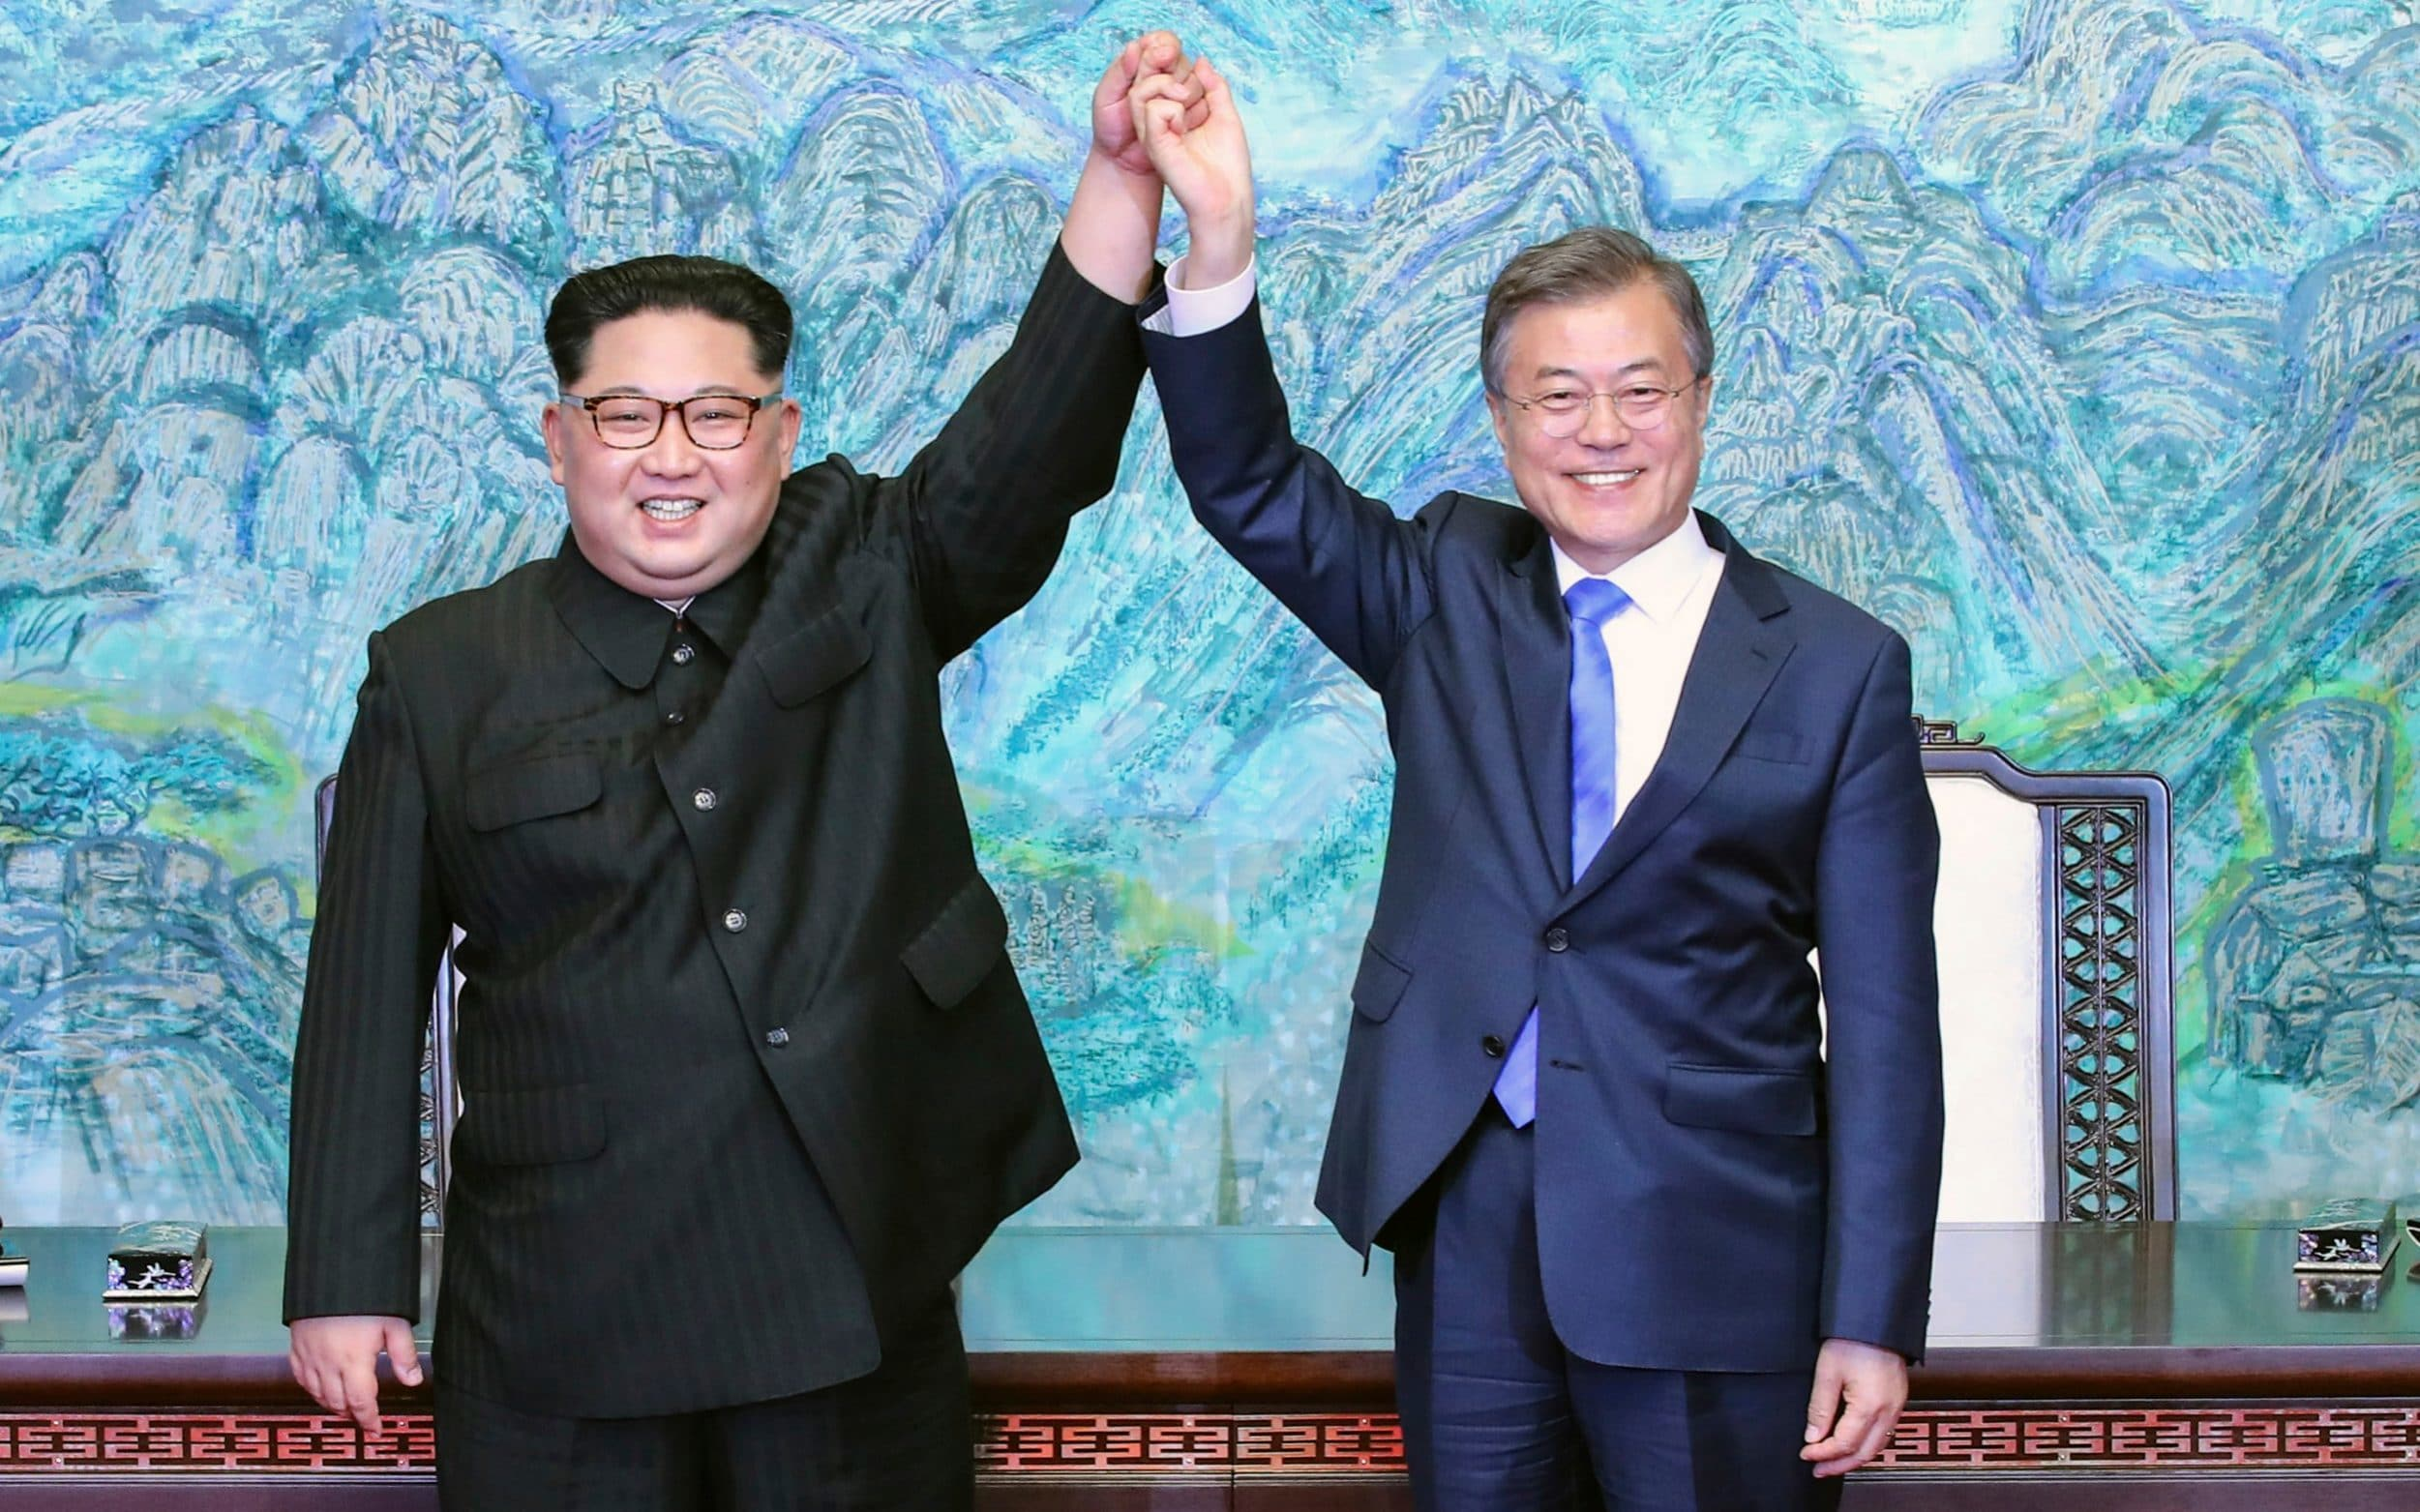 South Korean president jets to Pyongyang for 'heart-to-heart' nuclear talks with Kim Jong-un